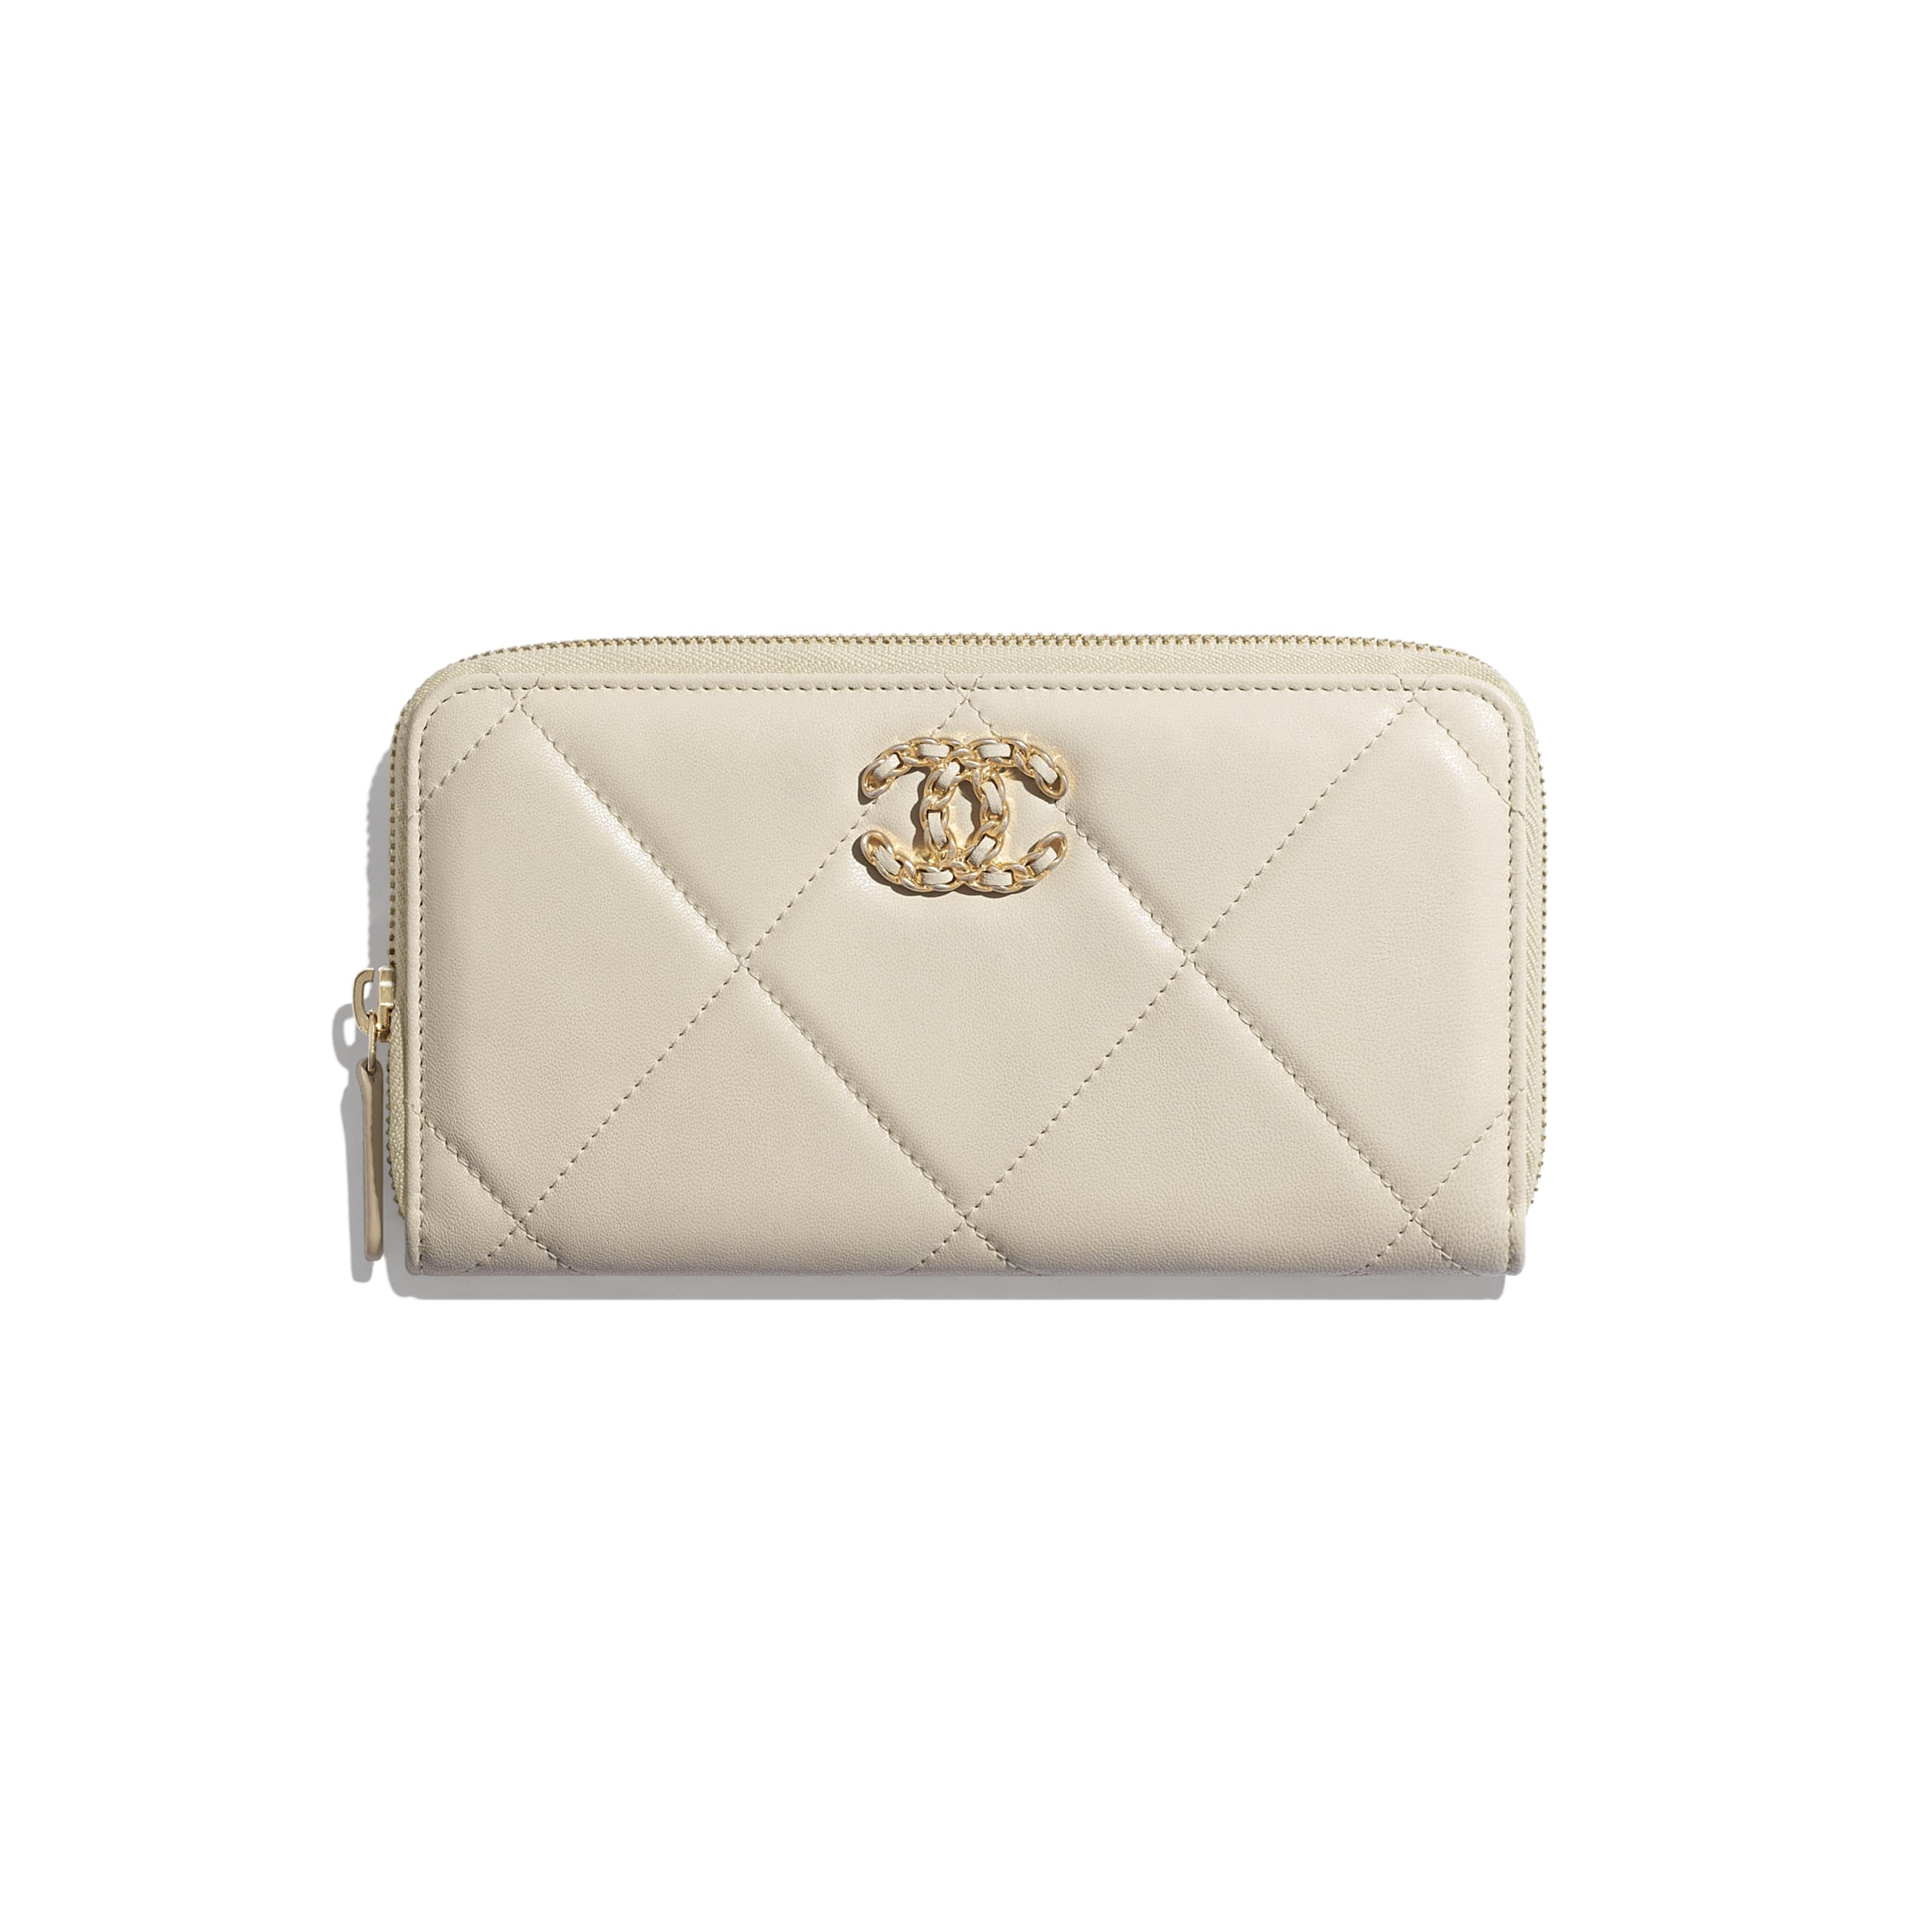 CHANEL 19 Long Zipped Wallet - Light Beige - Lambskin, Gold-Tone, Silver-Tone & Ruthenium-Finish Metal - Default view - see standard sized version